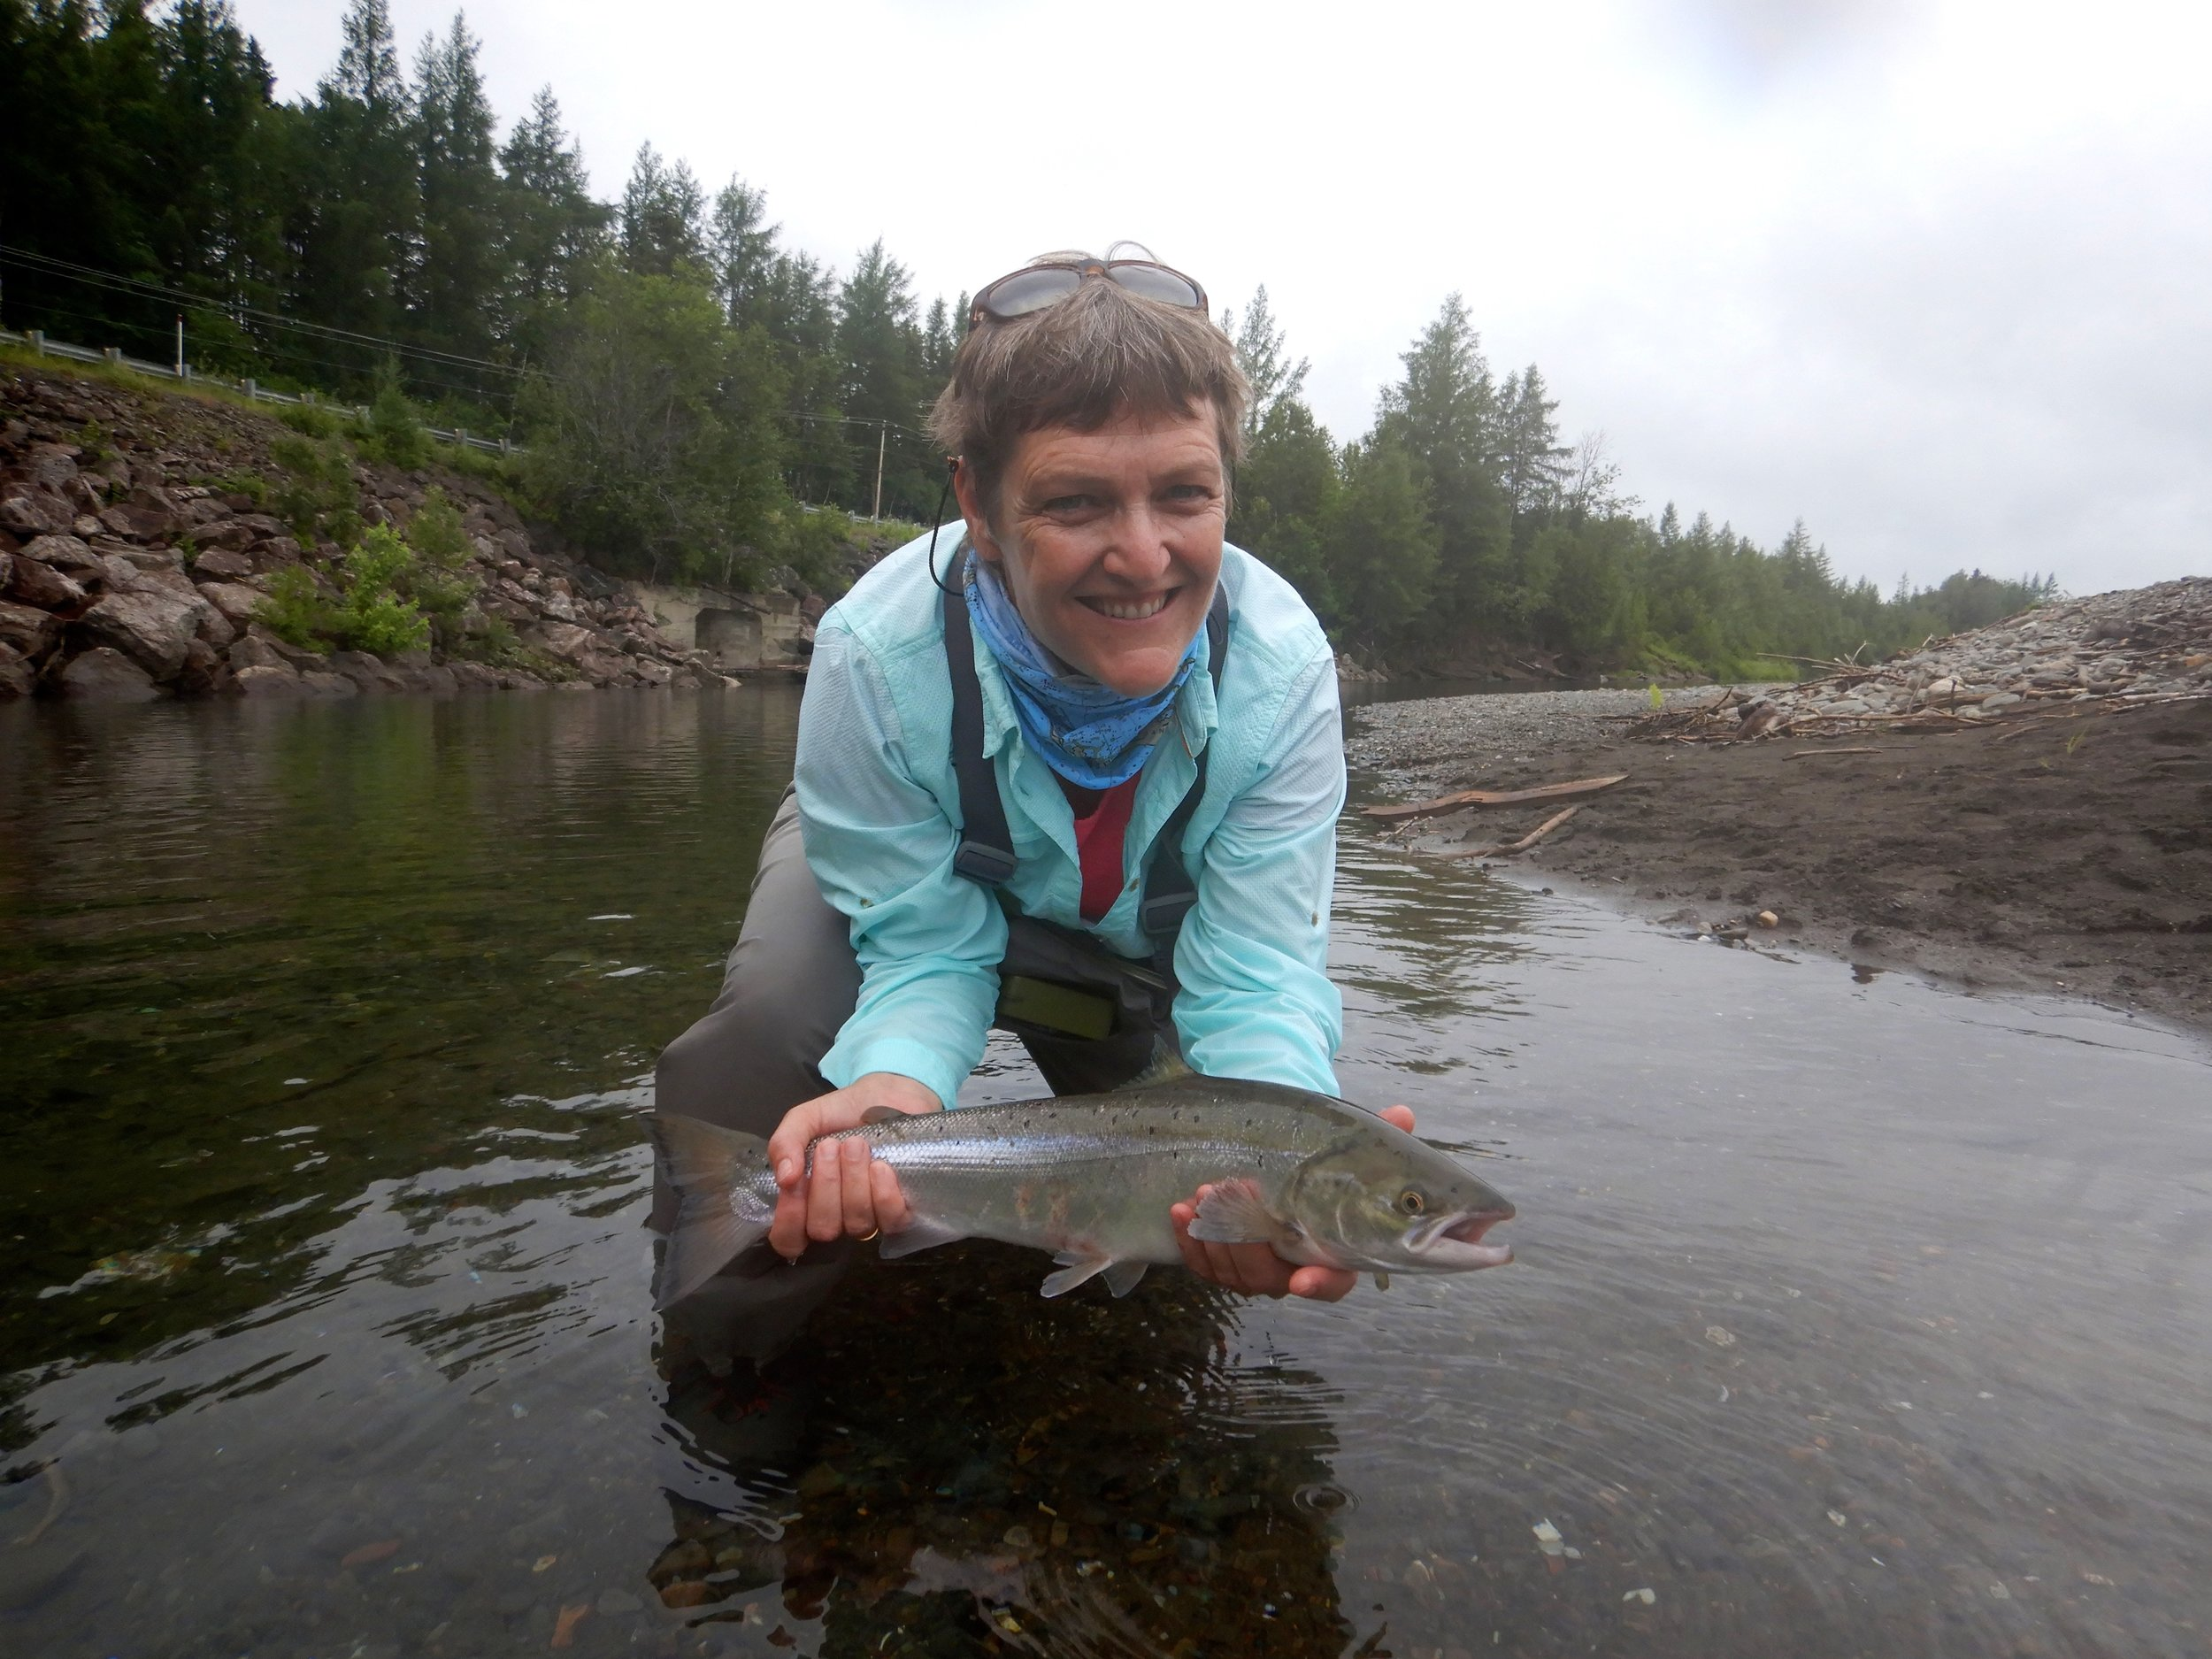 Vyvyan Burns with her first Atlantic salmon, Congradulations Vyvyan, well done!